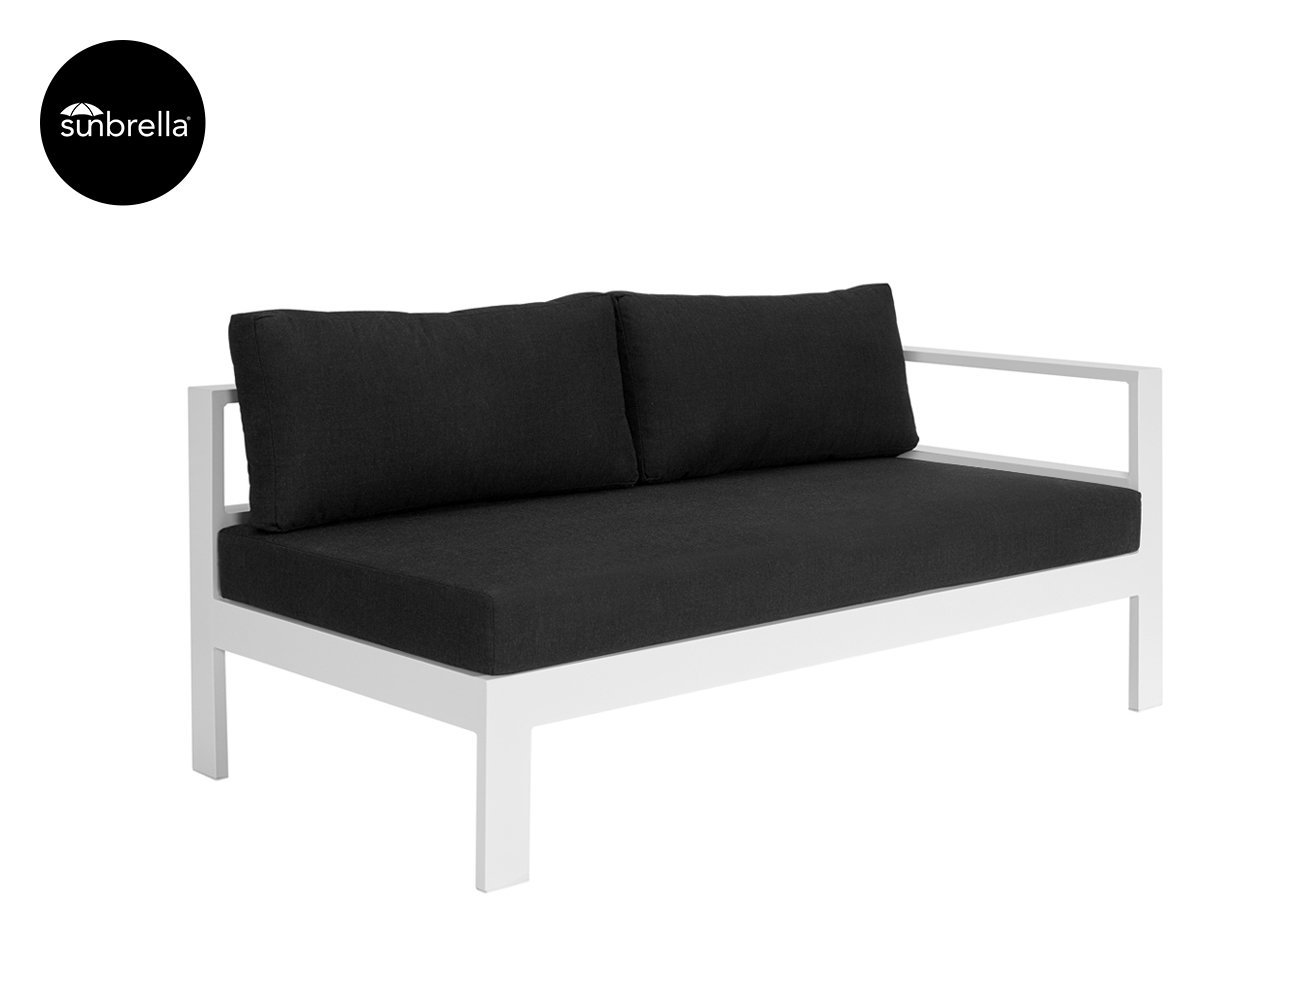 Sandpiper Outdoor Sectional Right Sofa - White